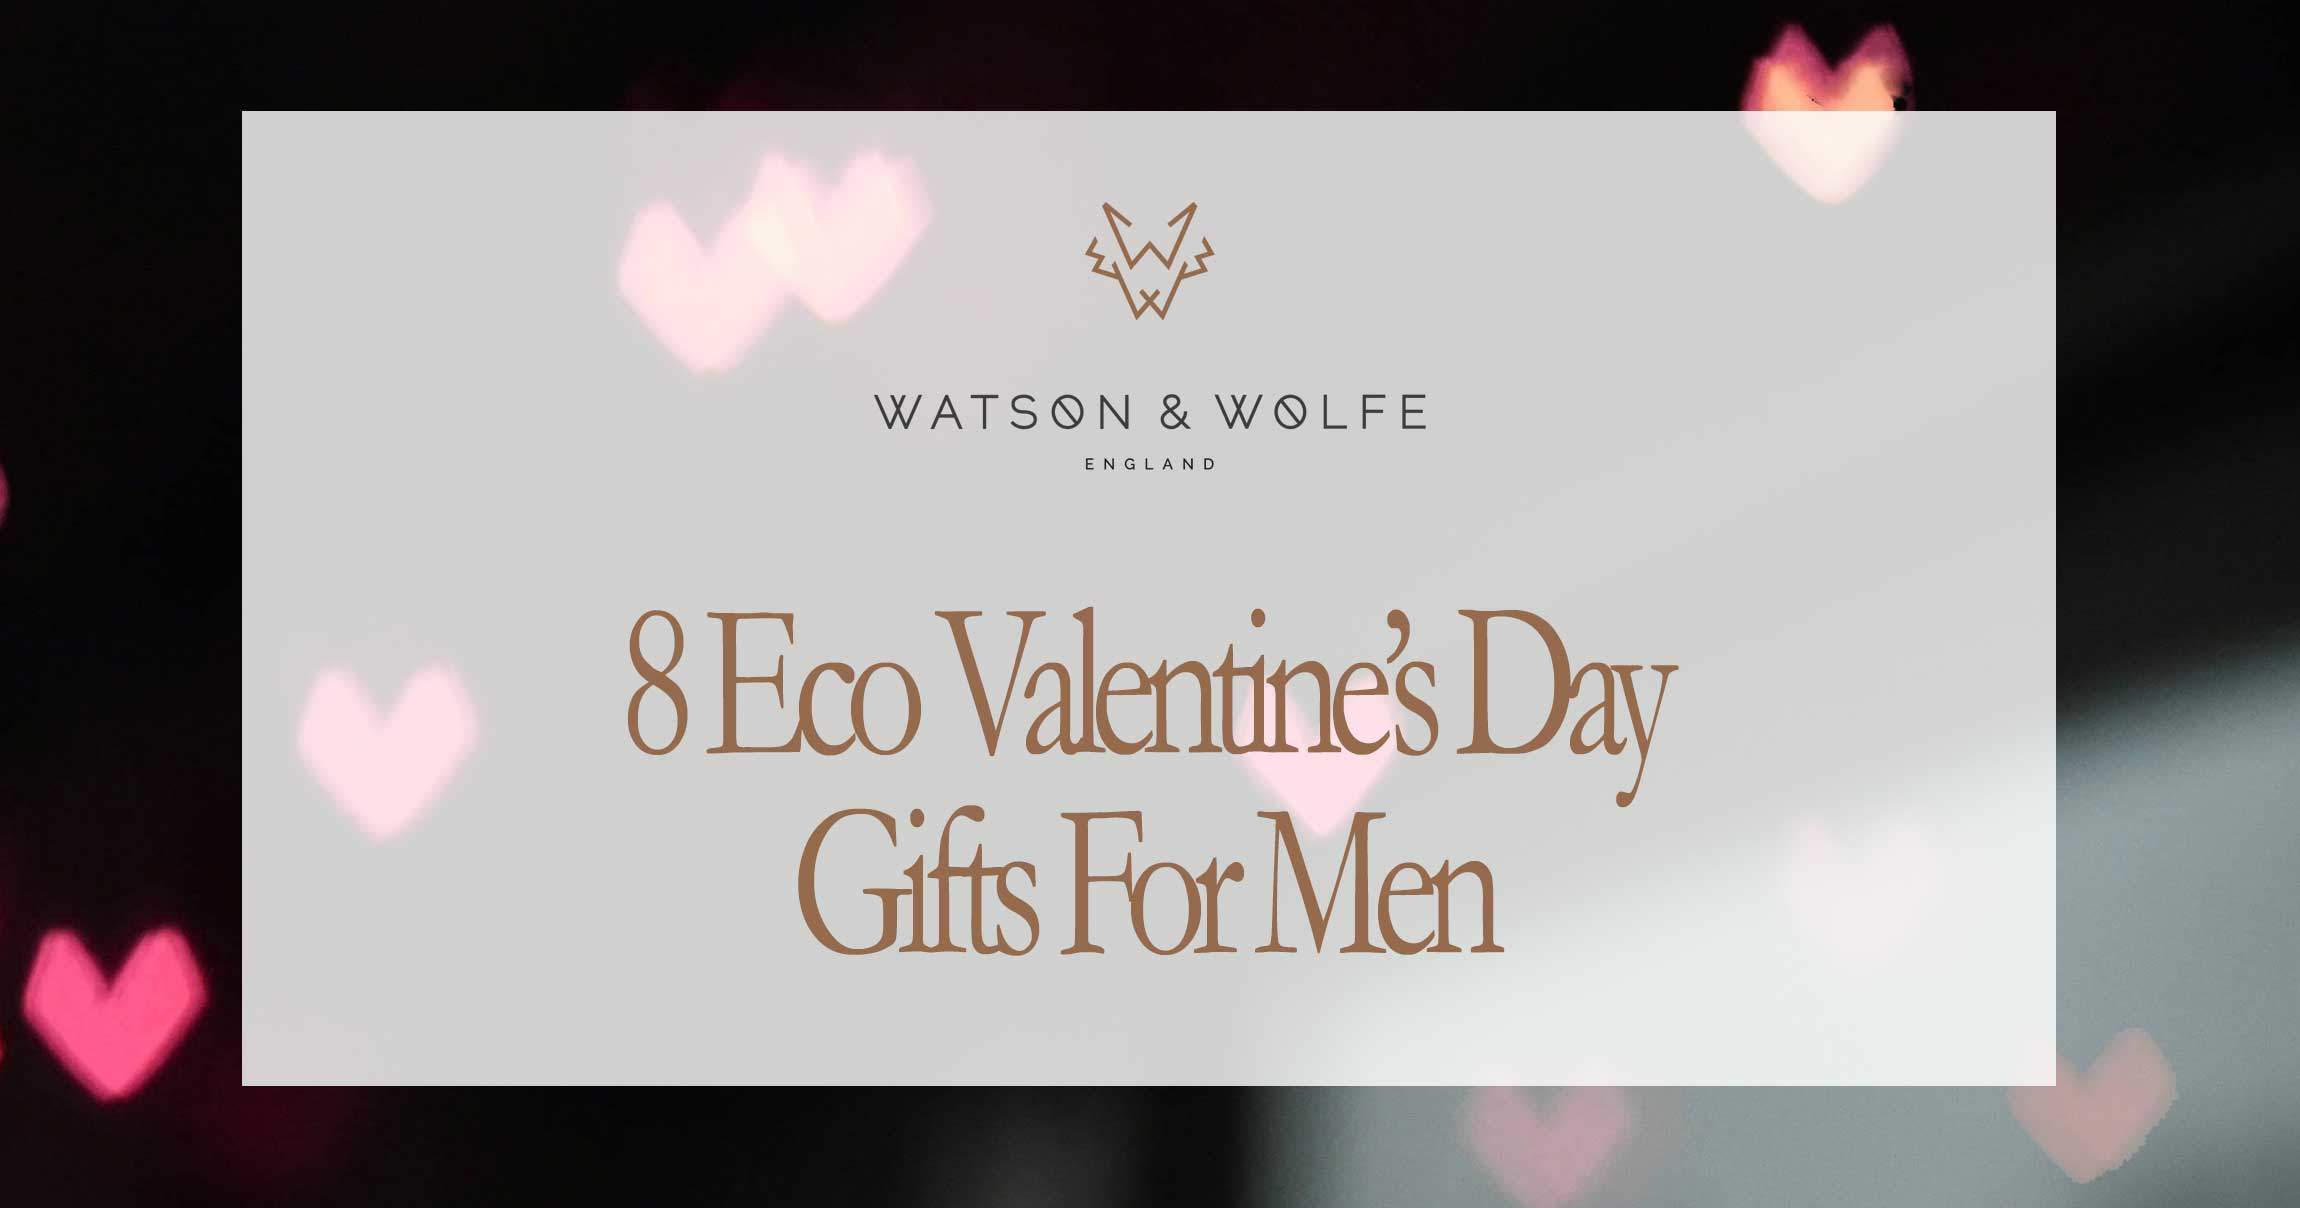 Eco Valentines Day Gifts for Men | Watson & Wolfe